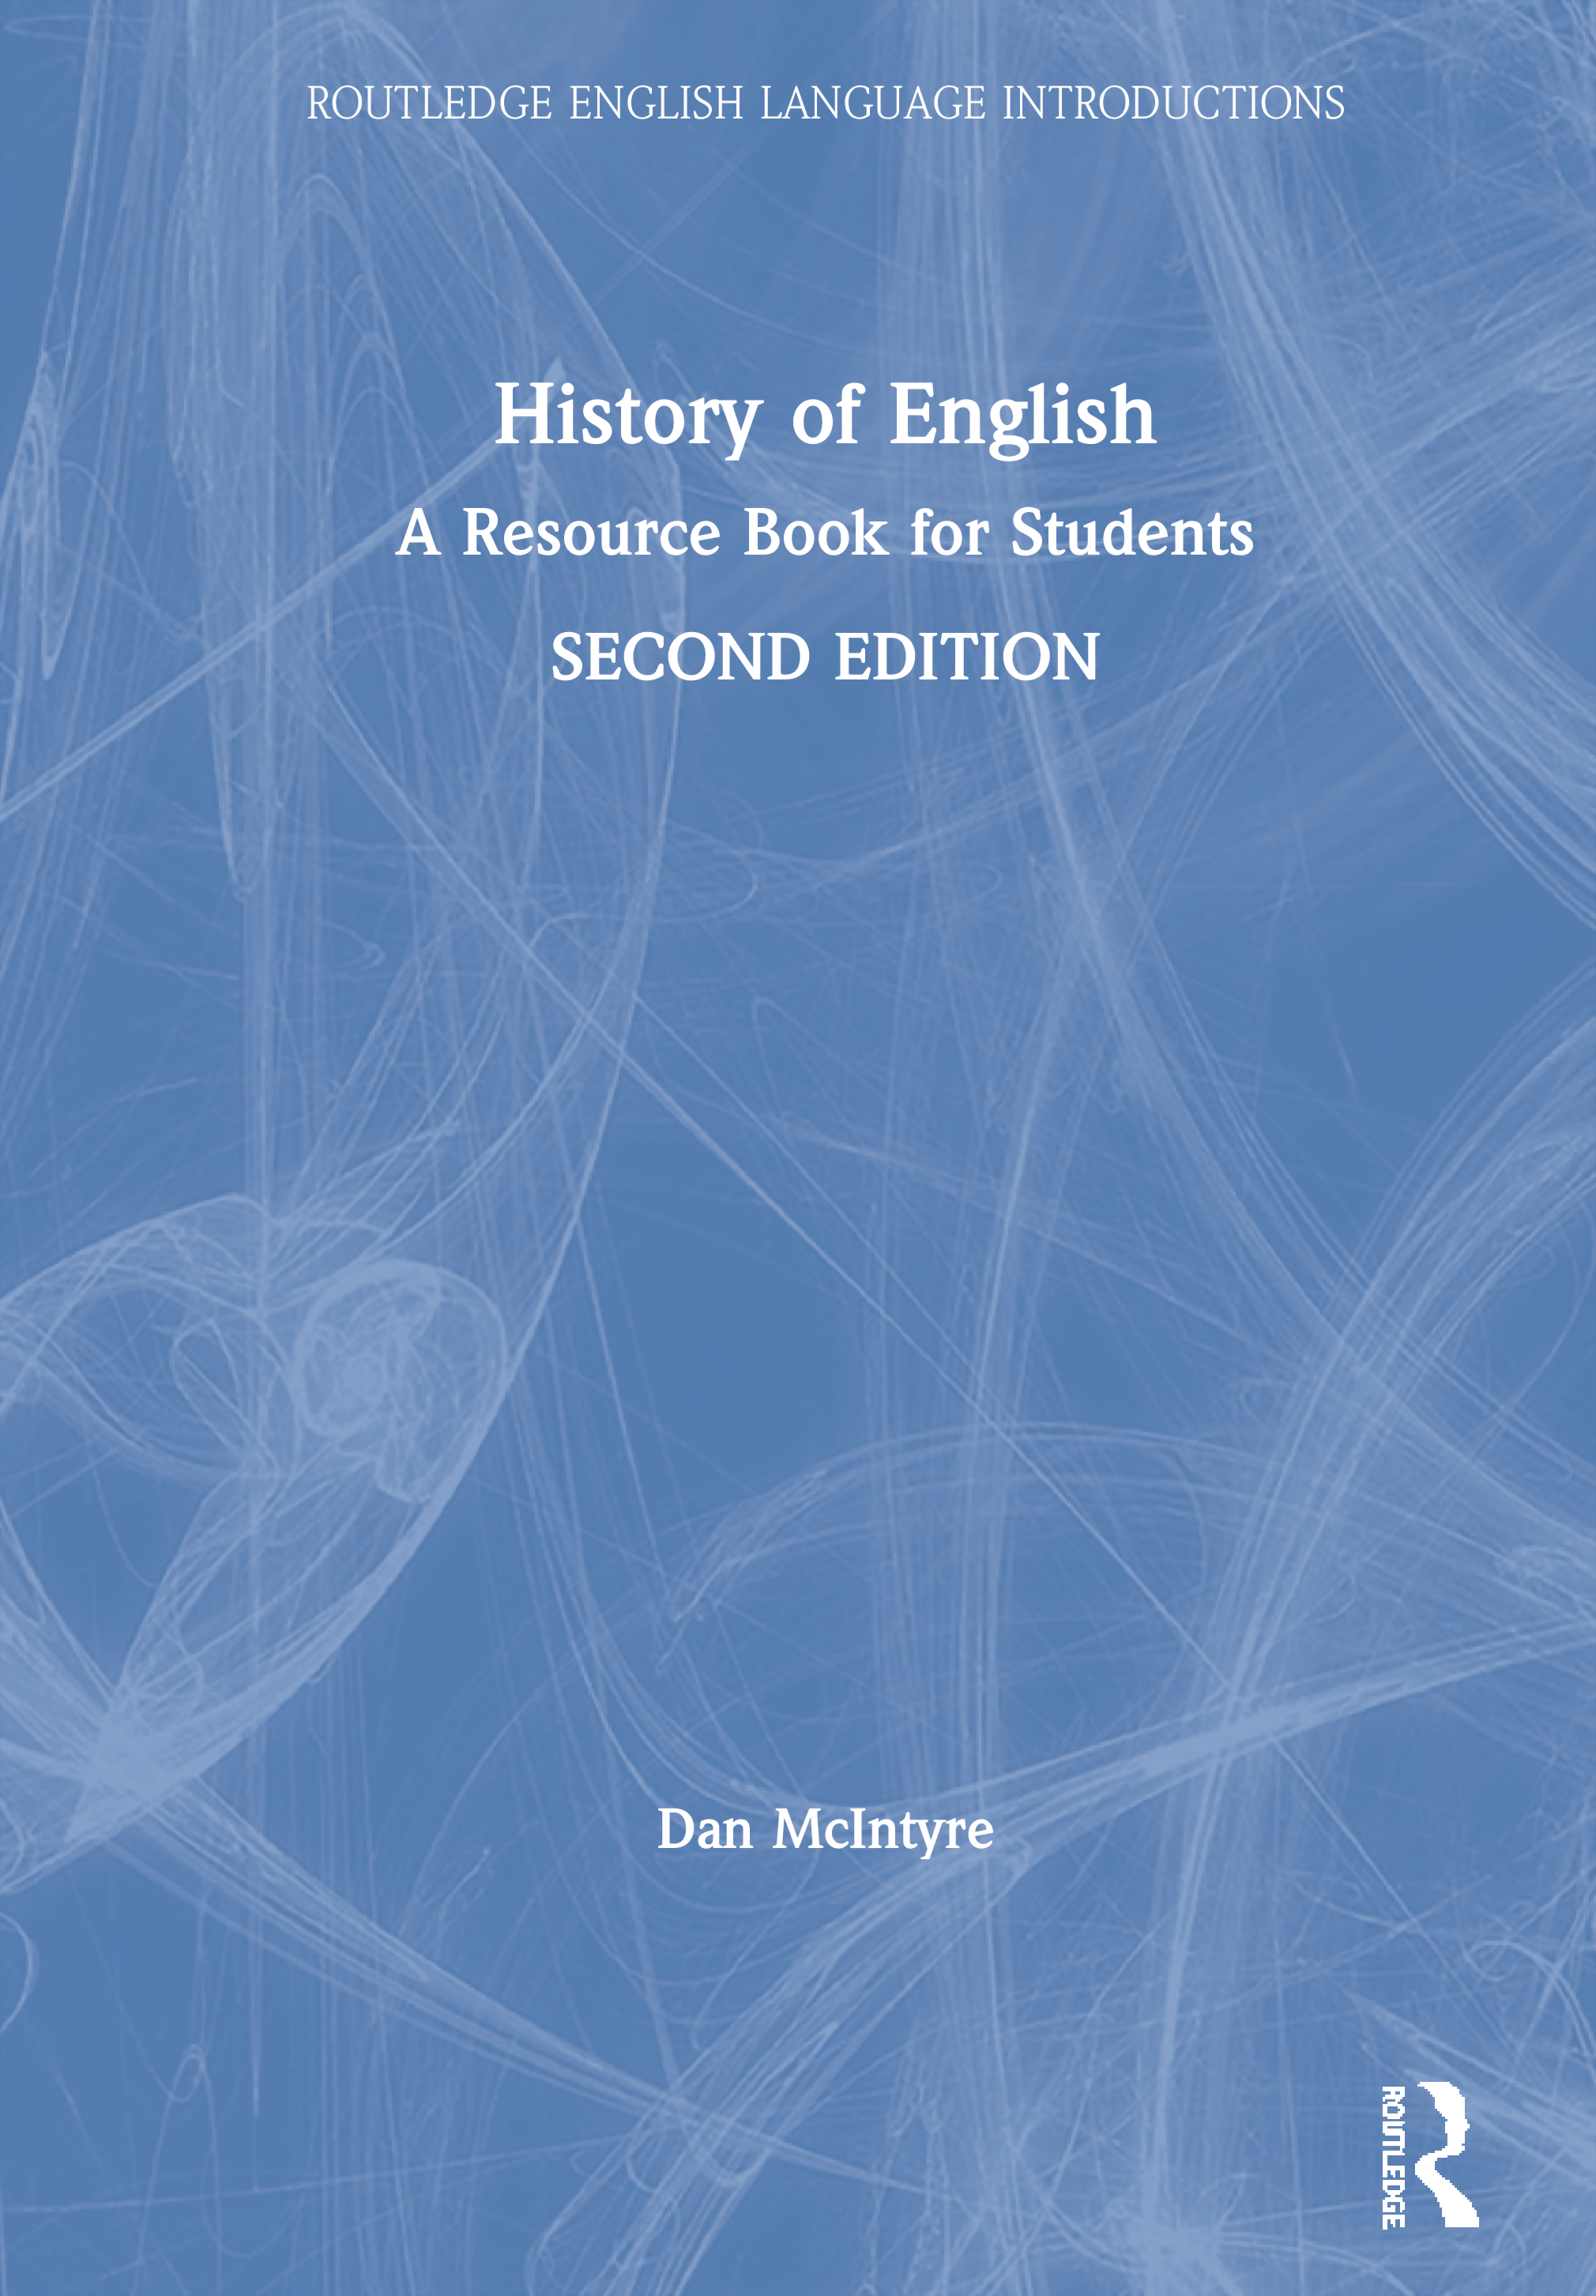 History of English: A Resource Book for Students book cover